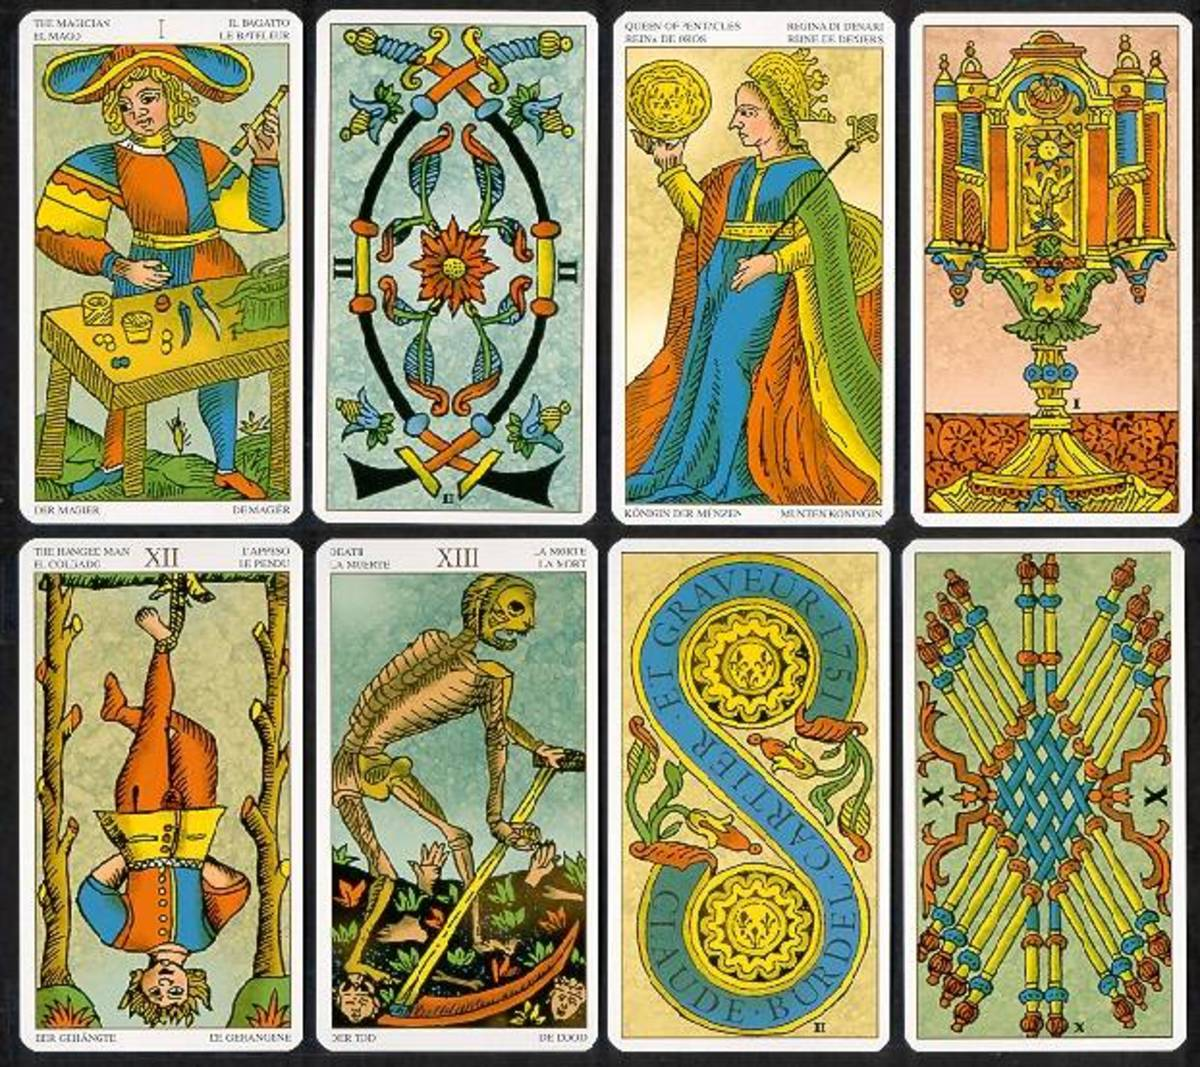 The Influence of Tarot